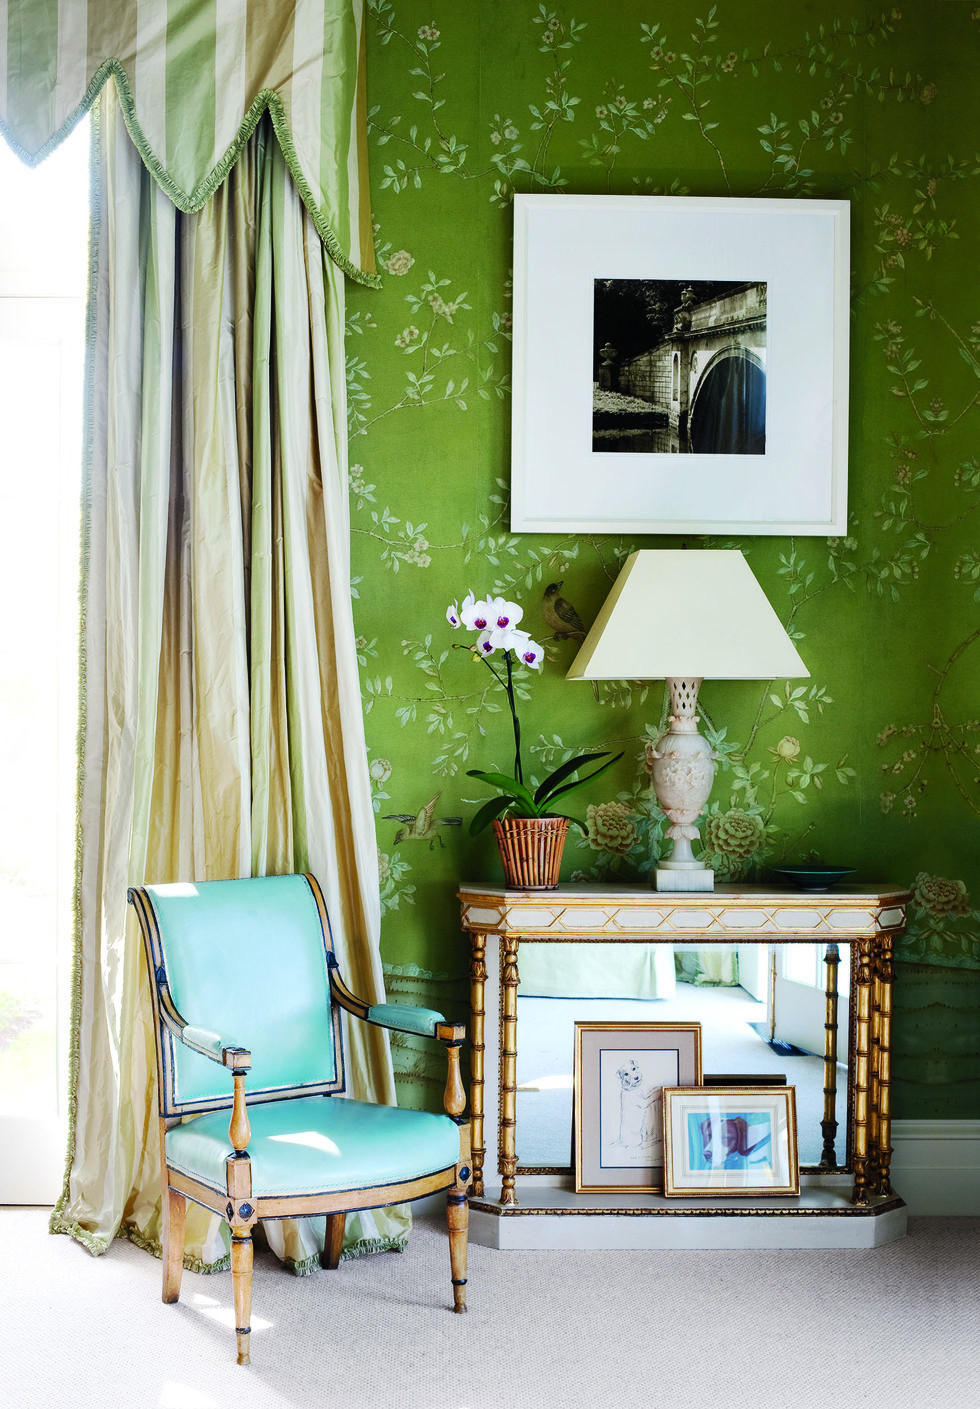 Interior Designers are using green in their designs